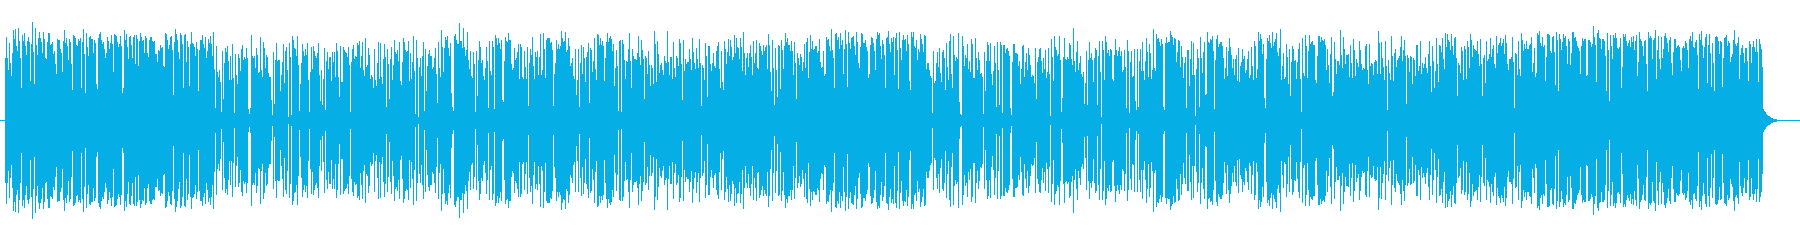 Music with uptempo and momentum's reproduced waveform